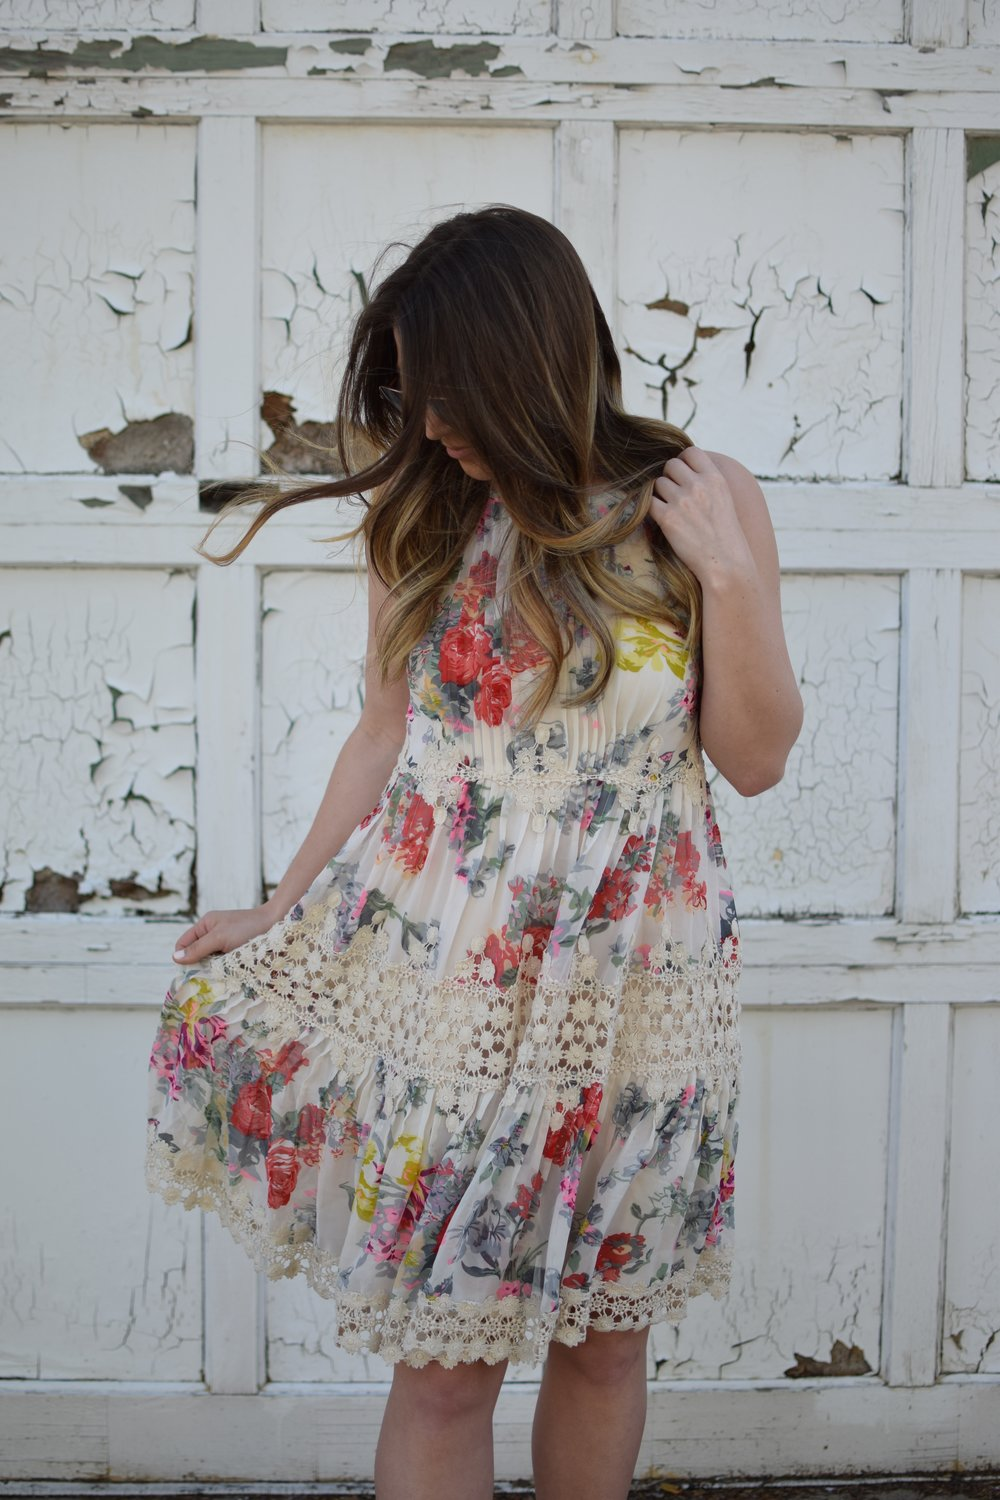 anthropology floral & lace print dress / spring & summer outfit idea / guest of wedding dress idea